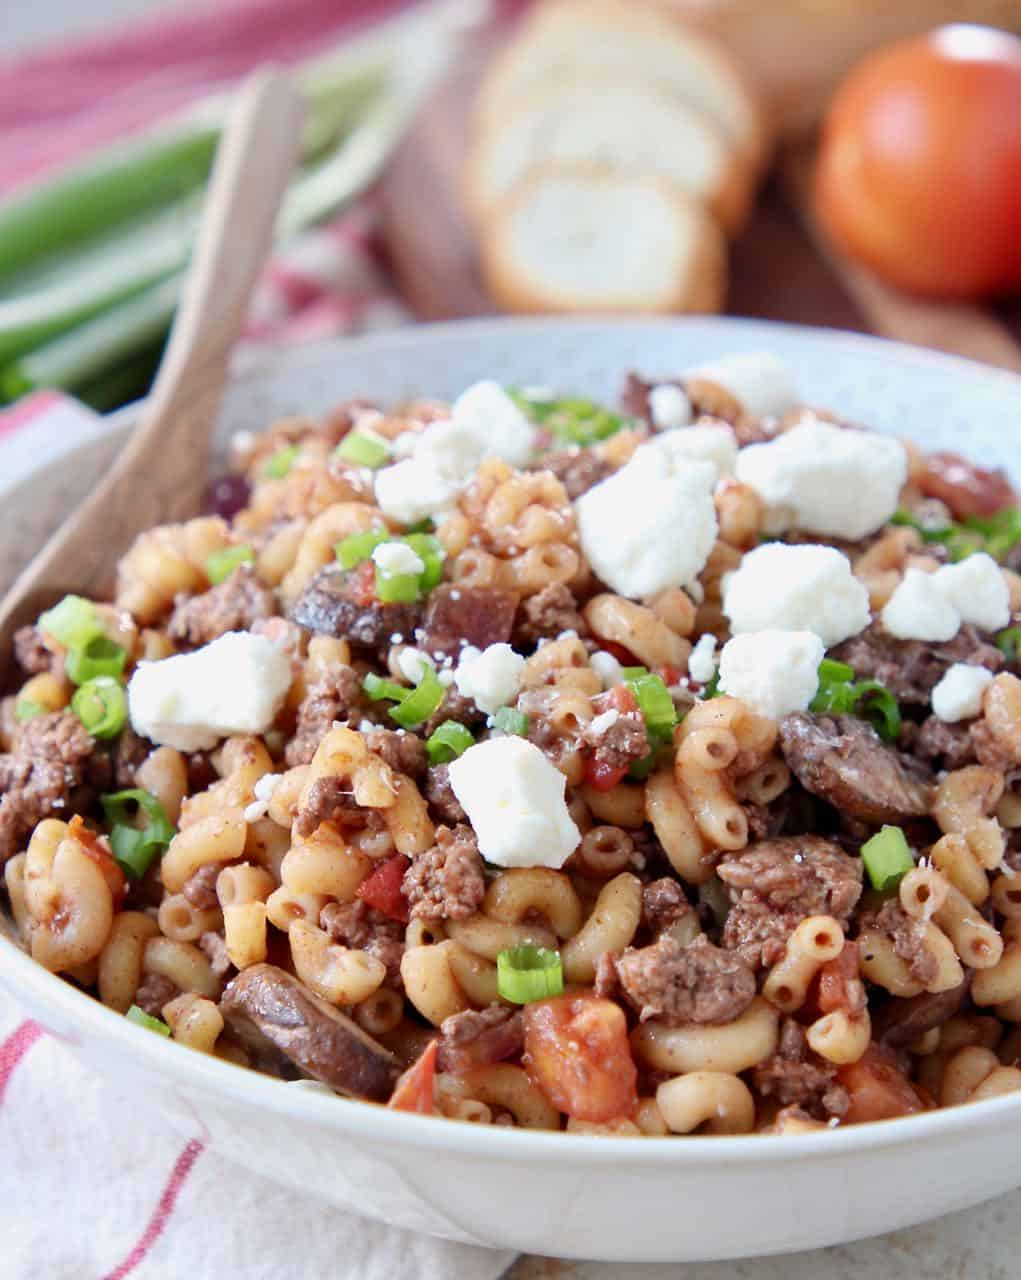 Ground lamb pasta in bowl topped with crumbled feta cheese